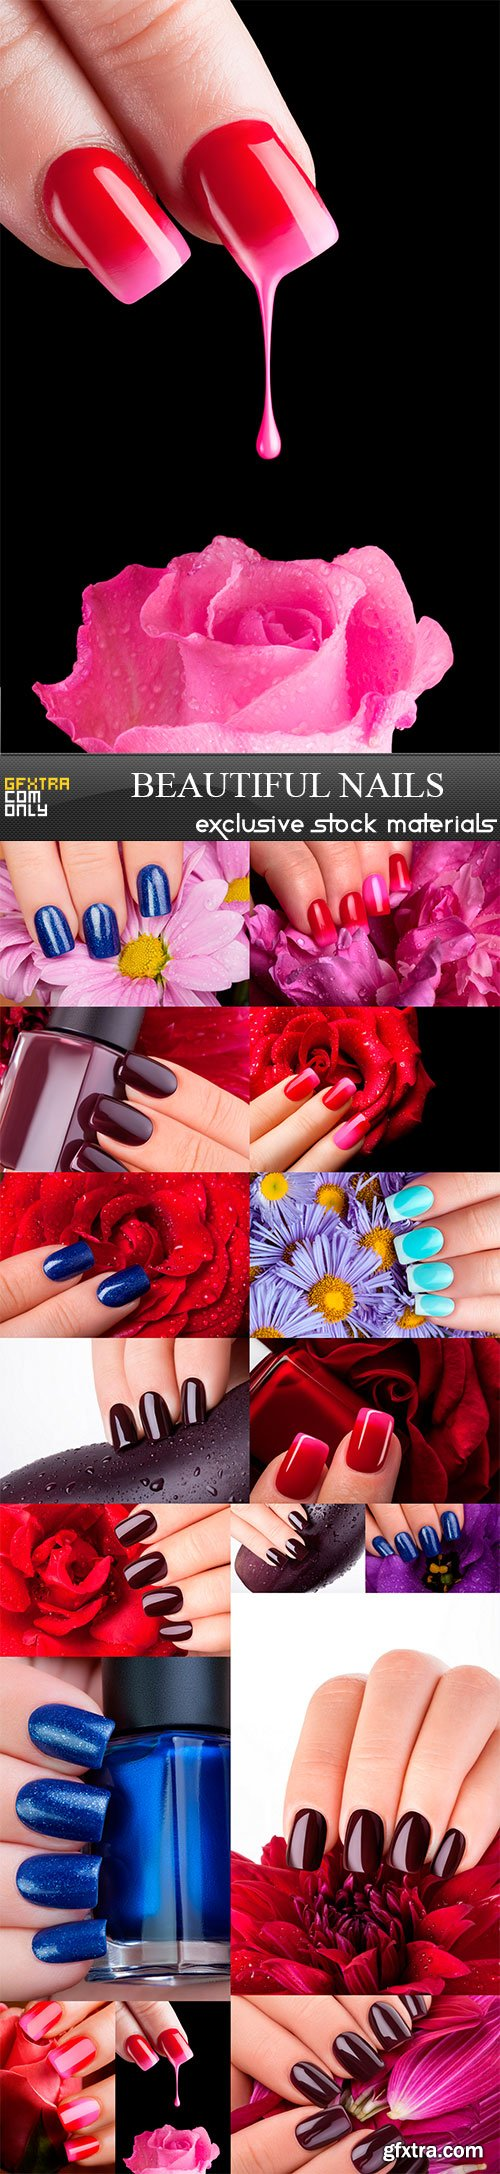 Beautiful nails and great idea for the advertising of cosmetics,16 x UHQ JPEG